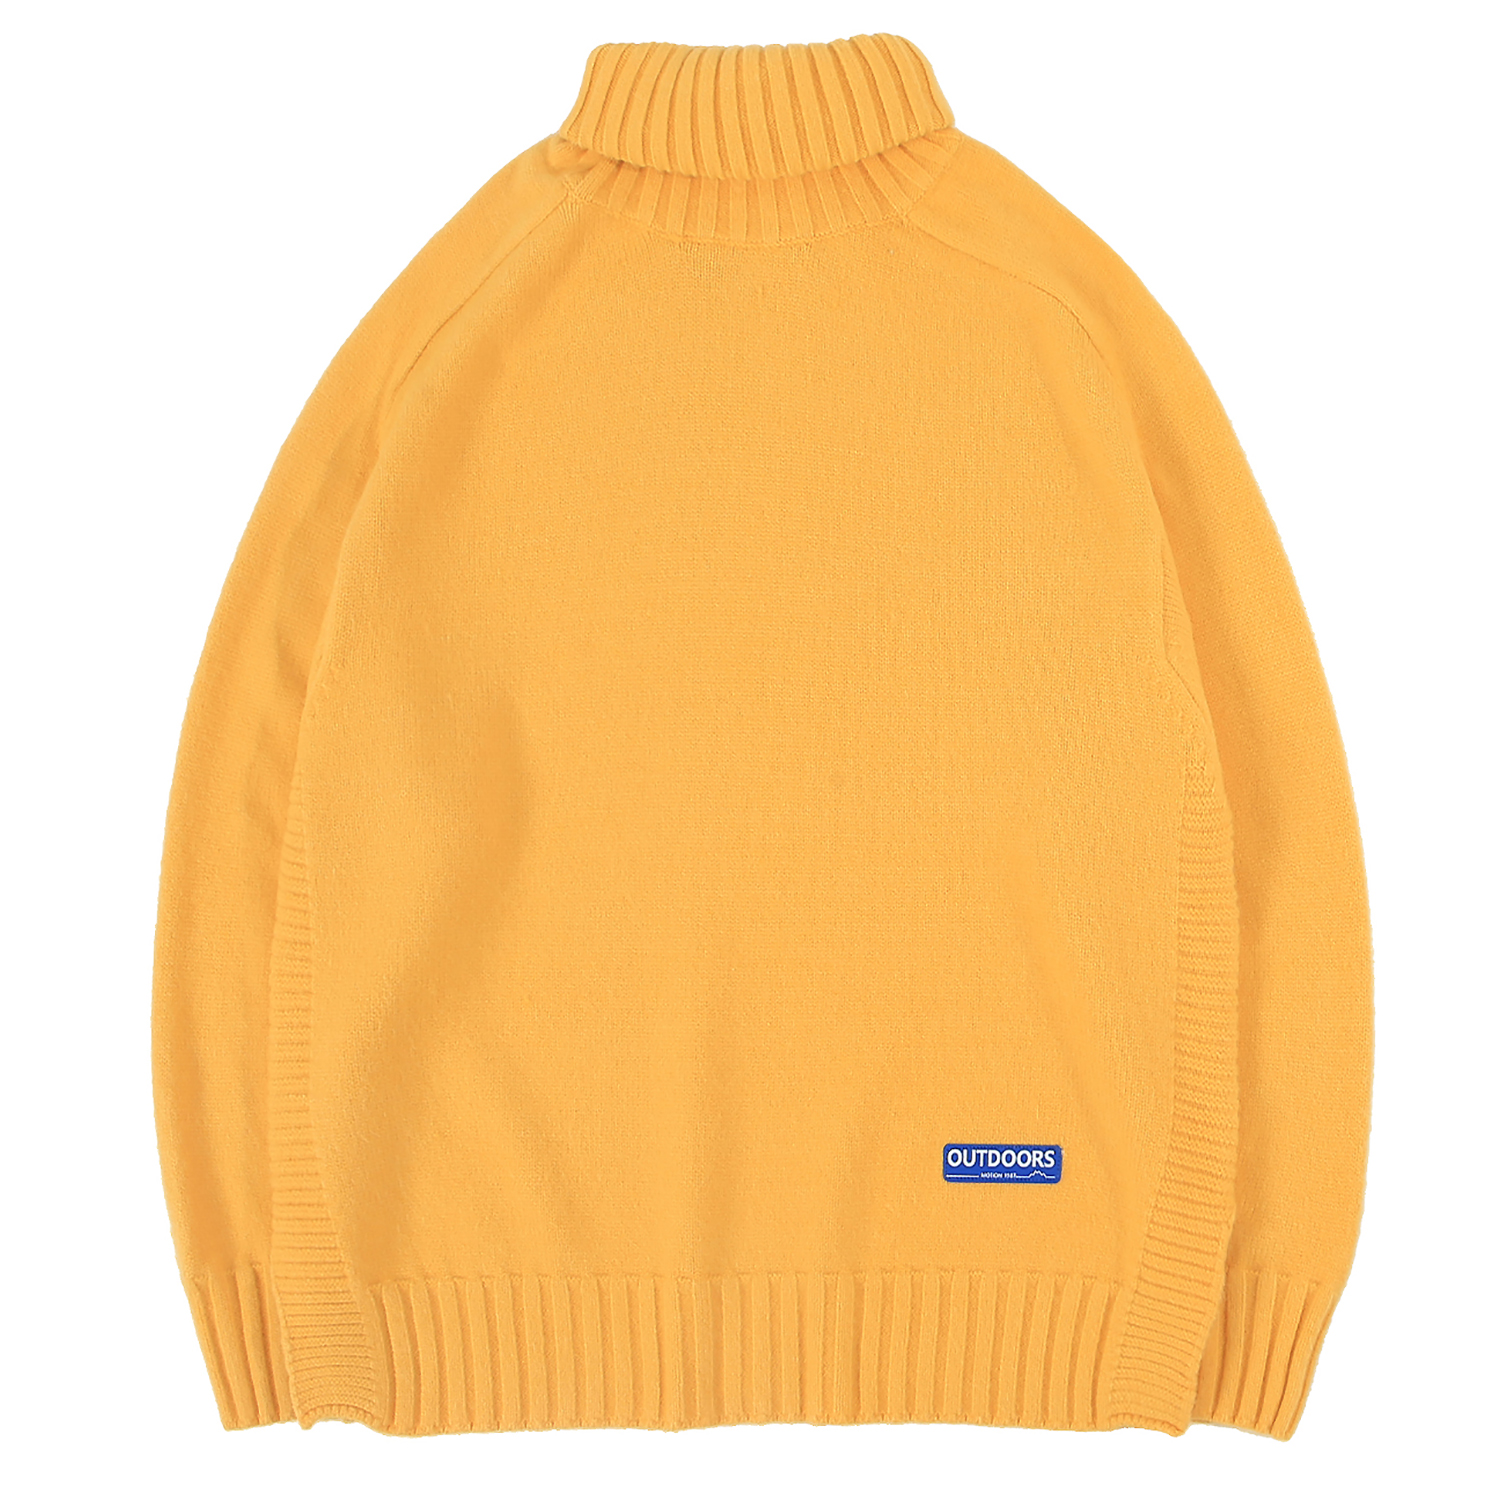 Men's Turtleneck Sweater Fine Knitted Jumpers Warmth Pullover Casual Tops Hip Hop For Young Boys Leisure Outdoor Solid Color